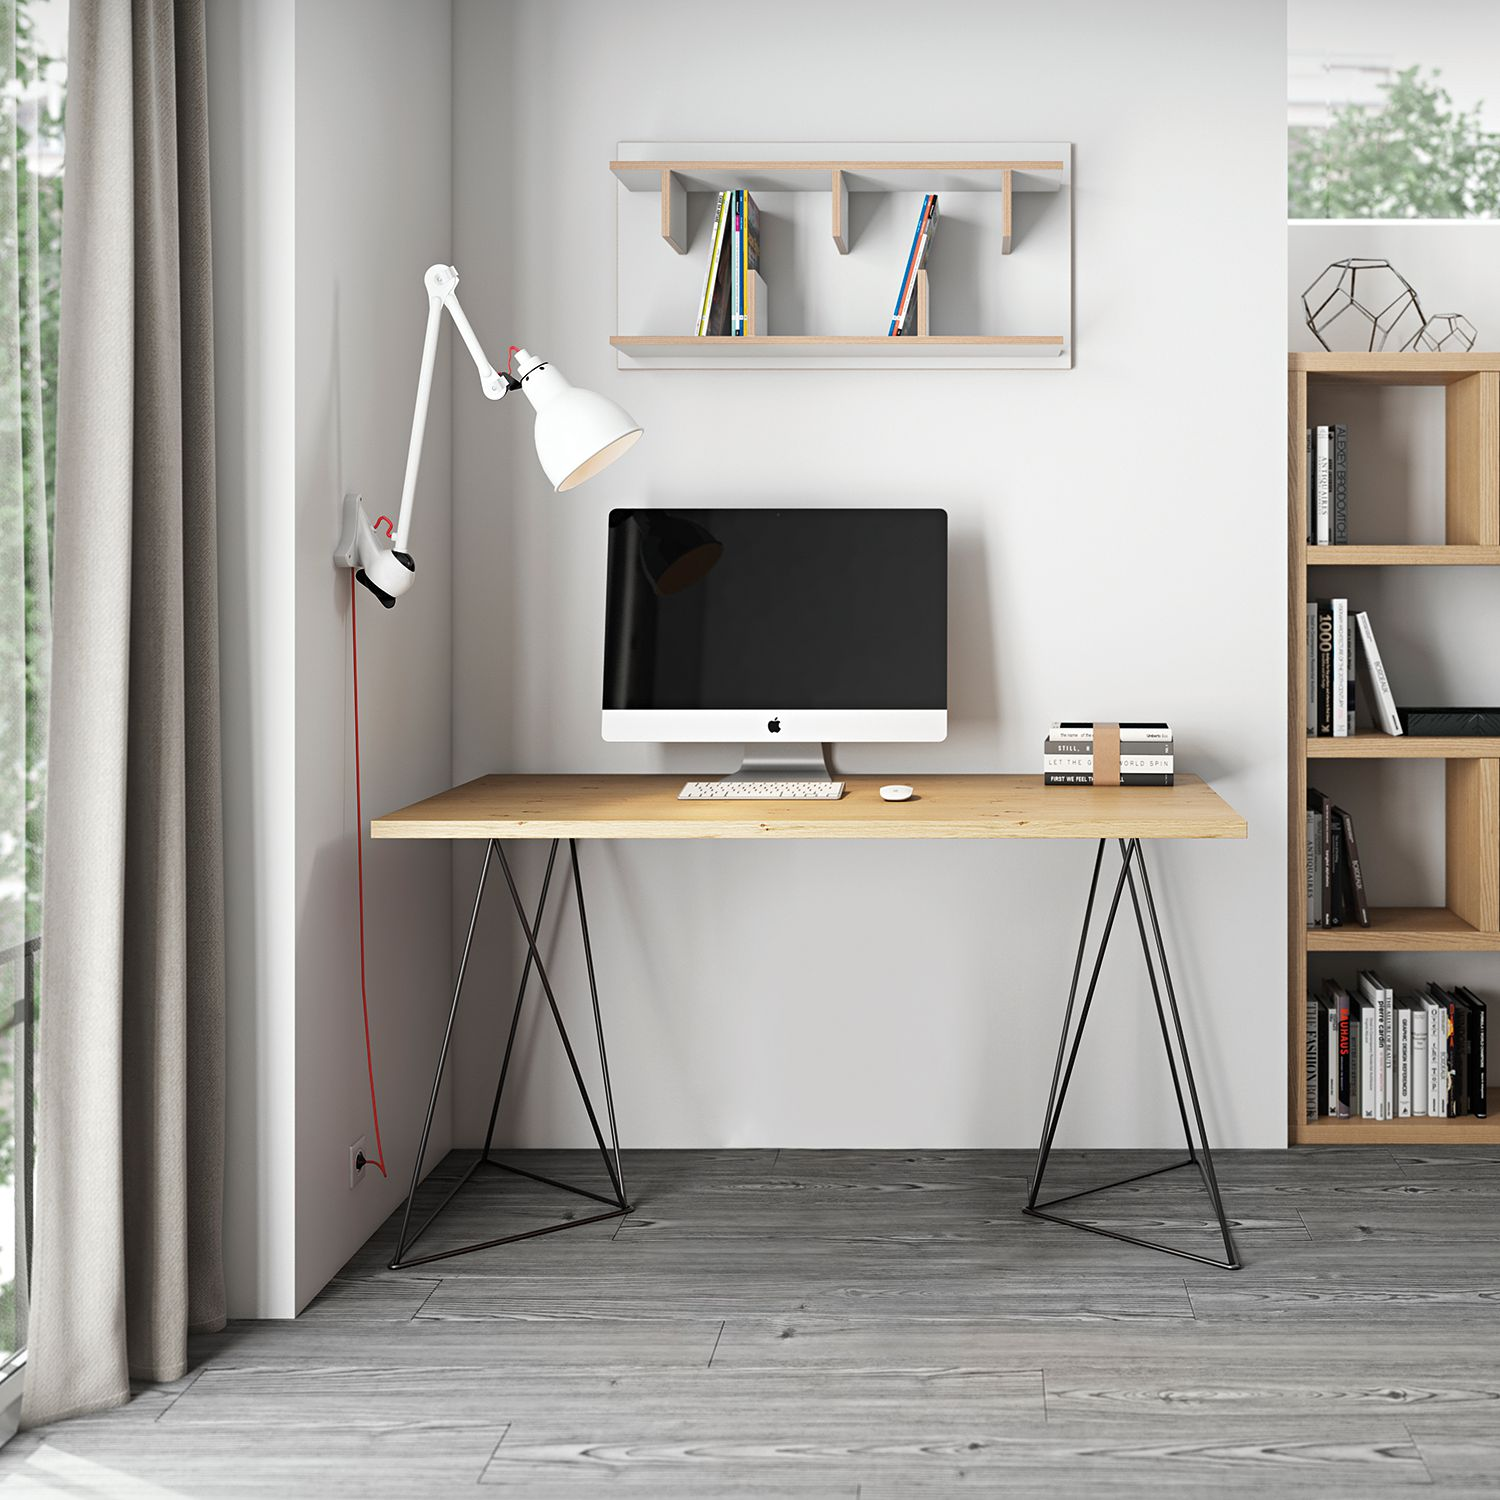 Interior | Homeoffice mit Home24